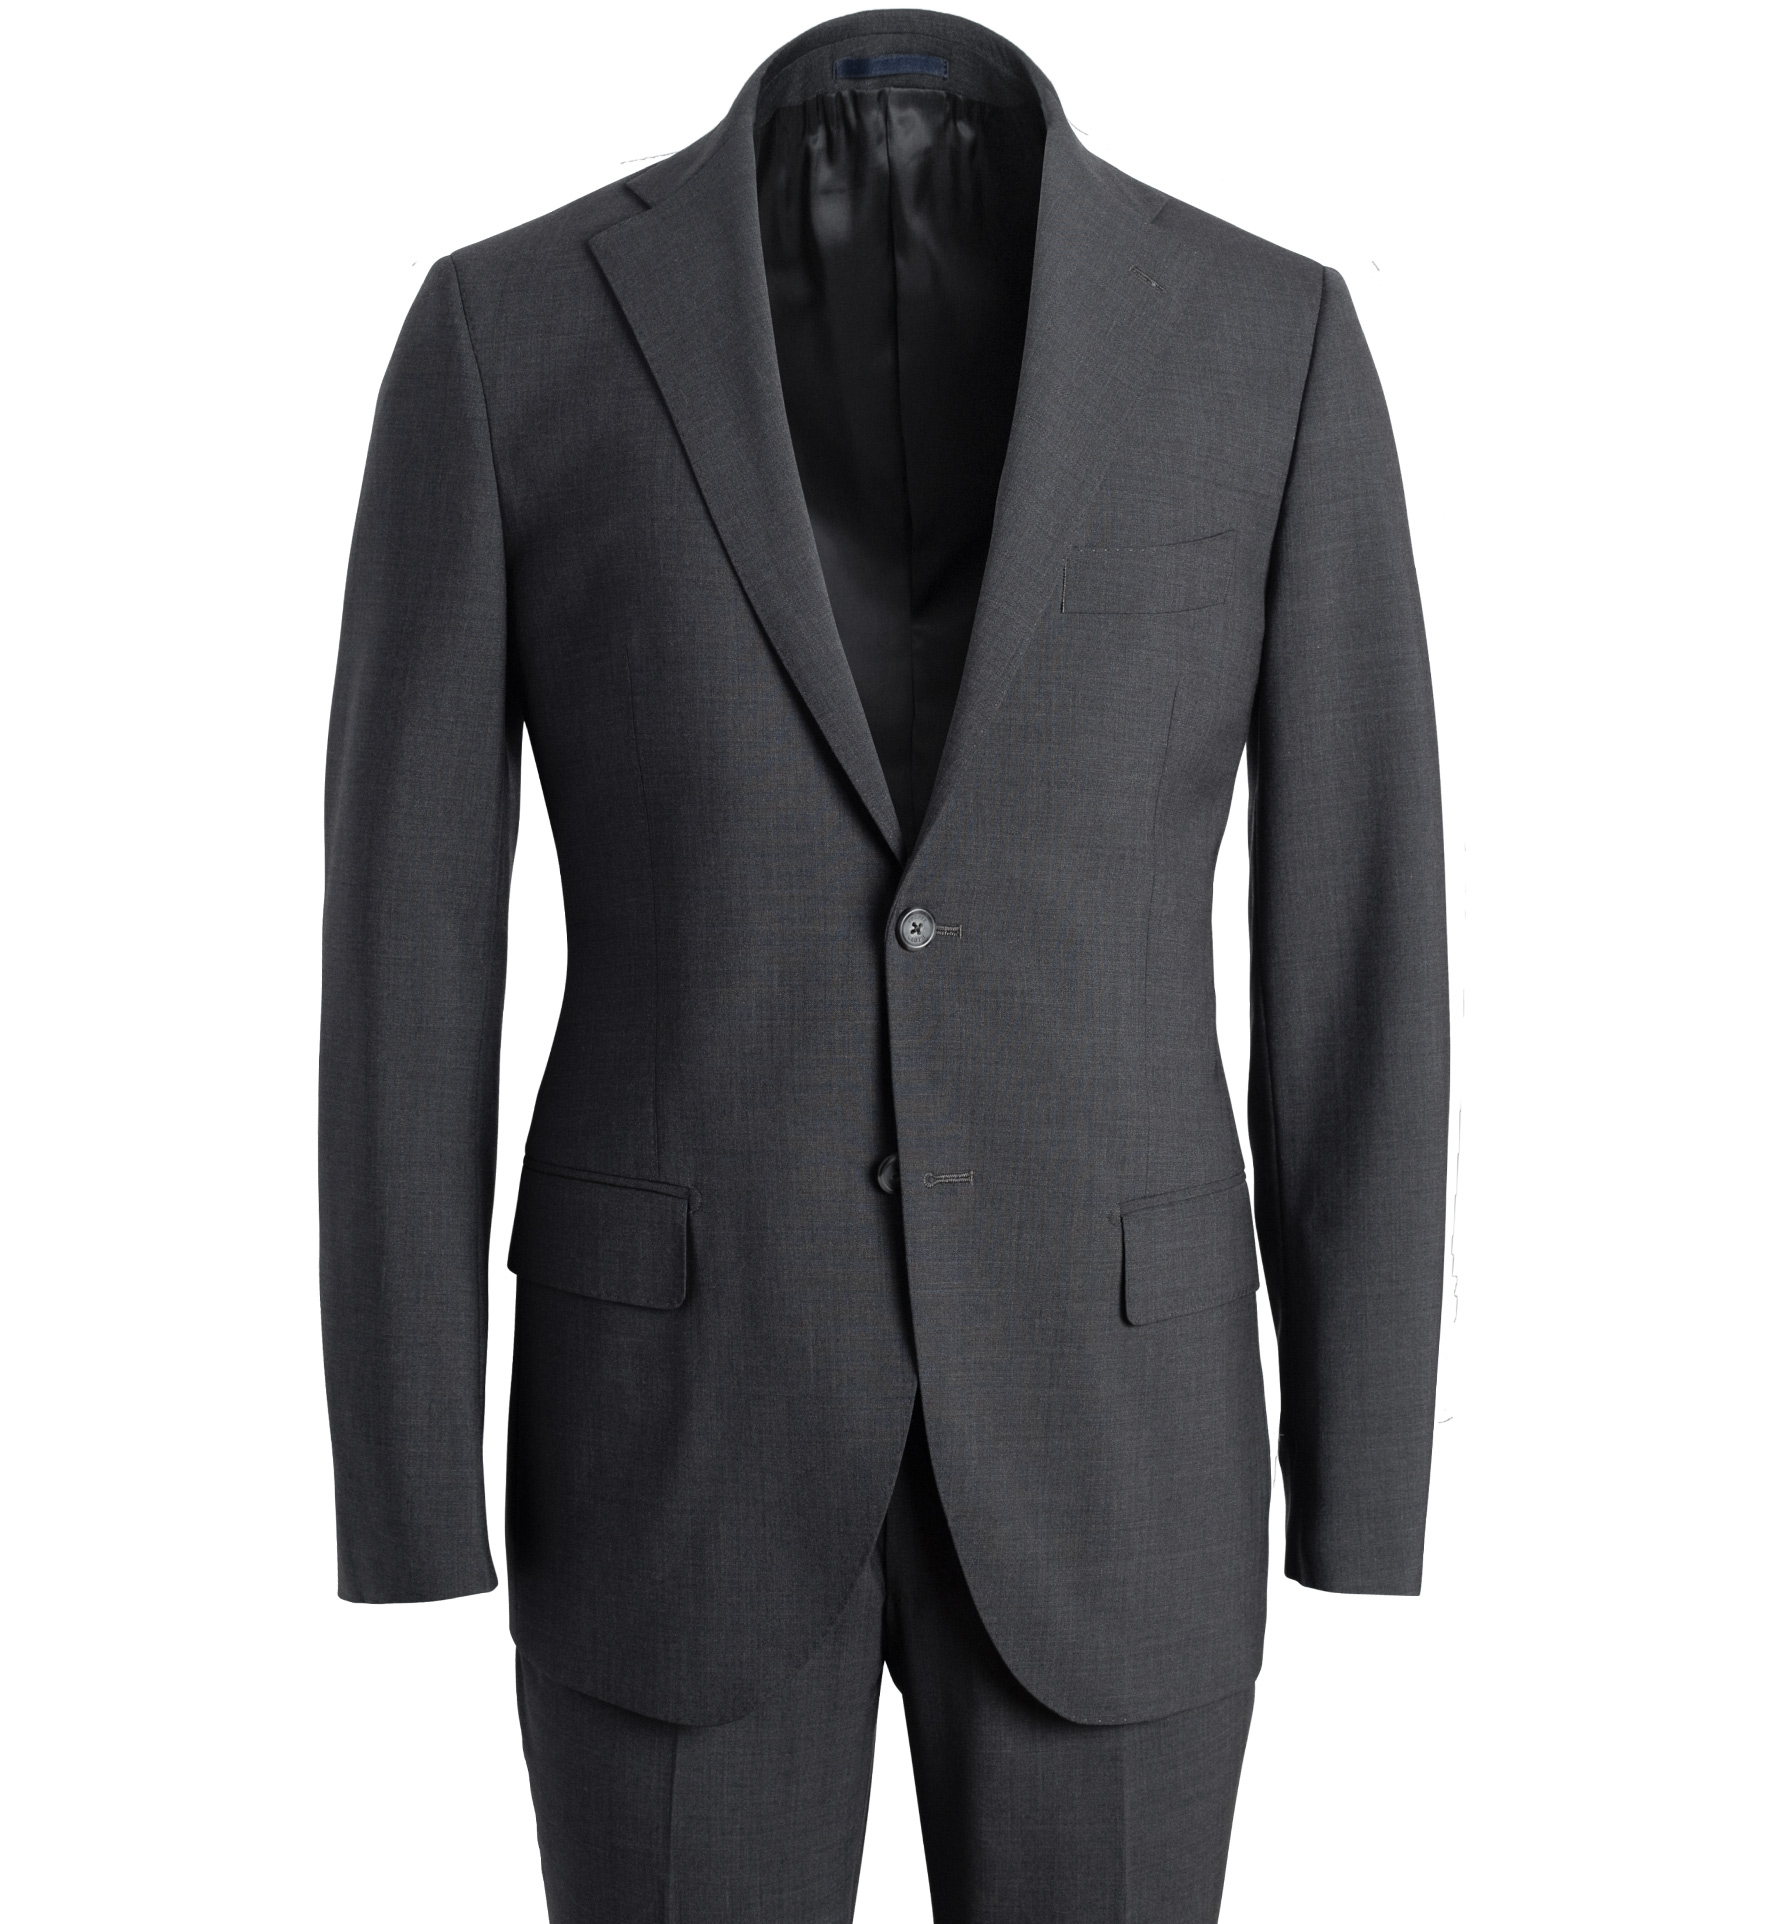 Zoom Image of Allen Charcoal Stretch Wool Suit